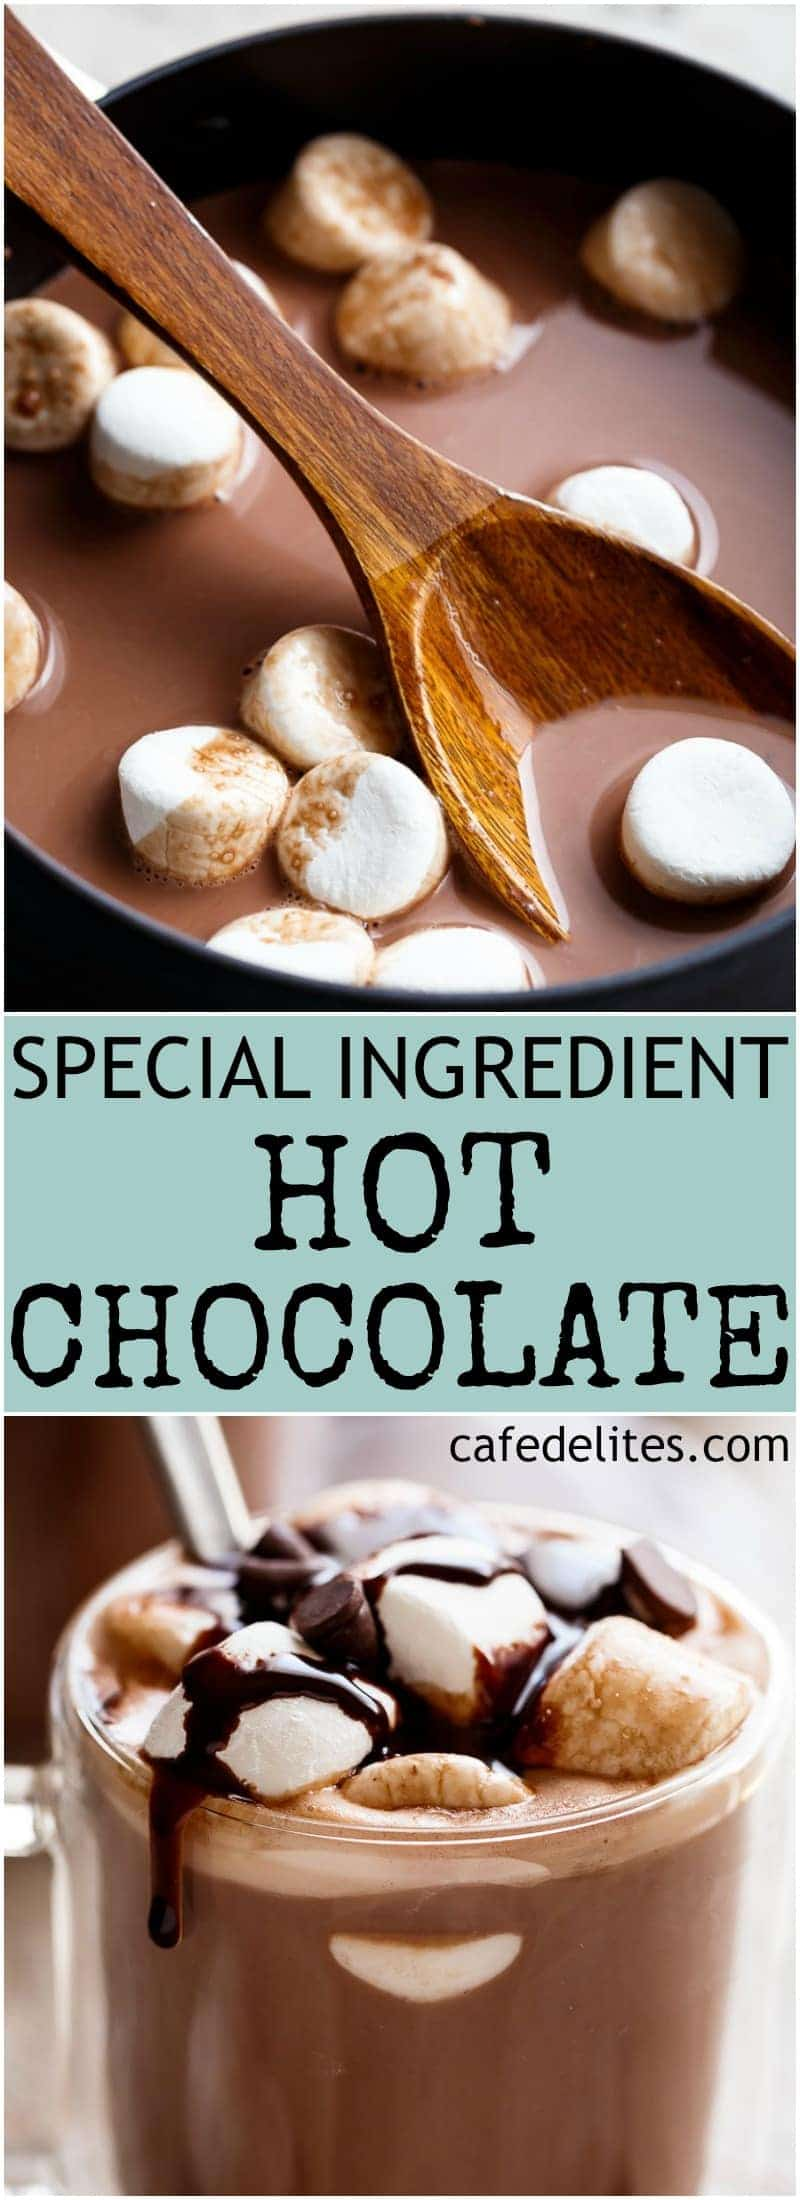 This Special Ingredient Hot Chocolate is so decadently rich and creamy, they'll be begging you for your secret! And half the calories! | https://cafedelites.com